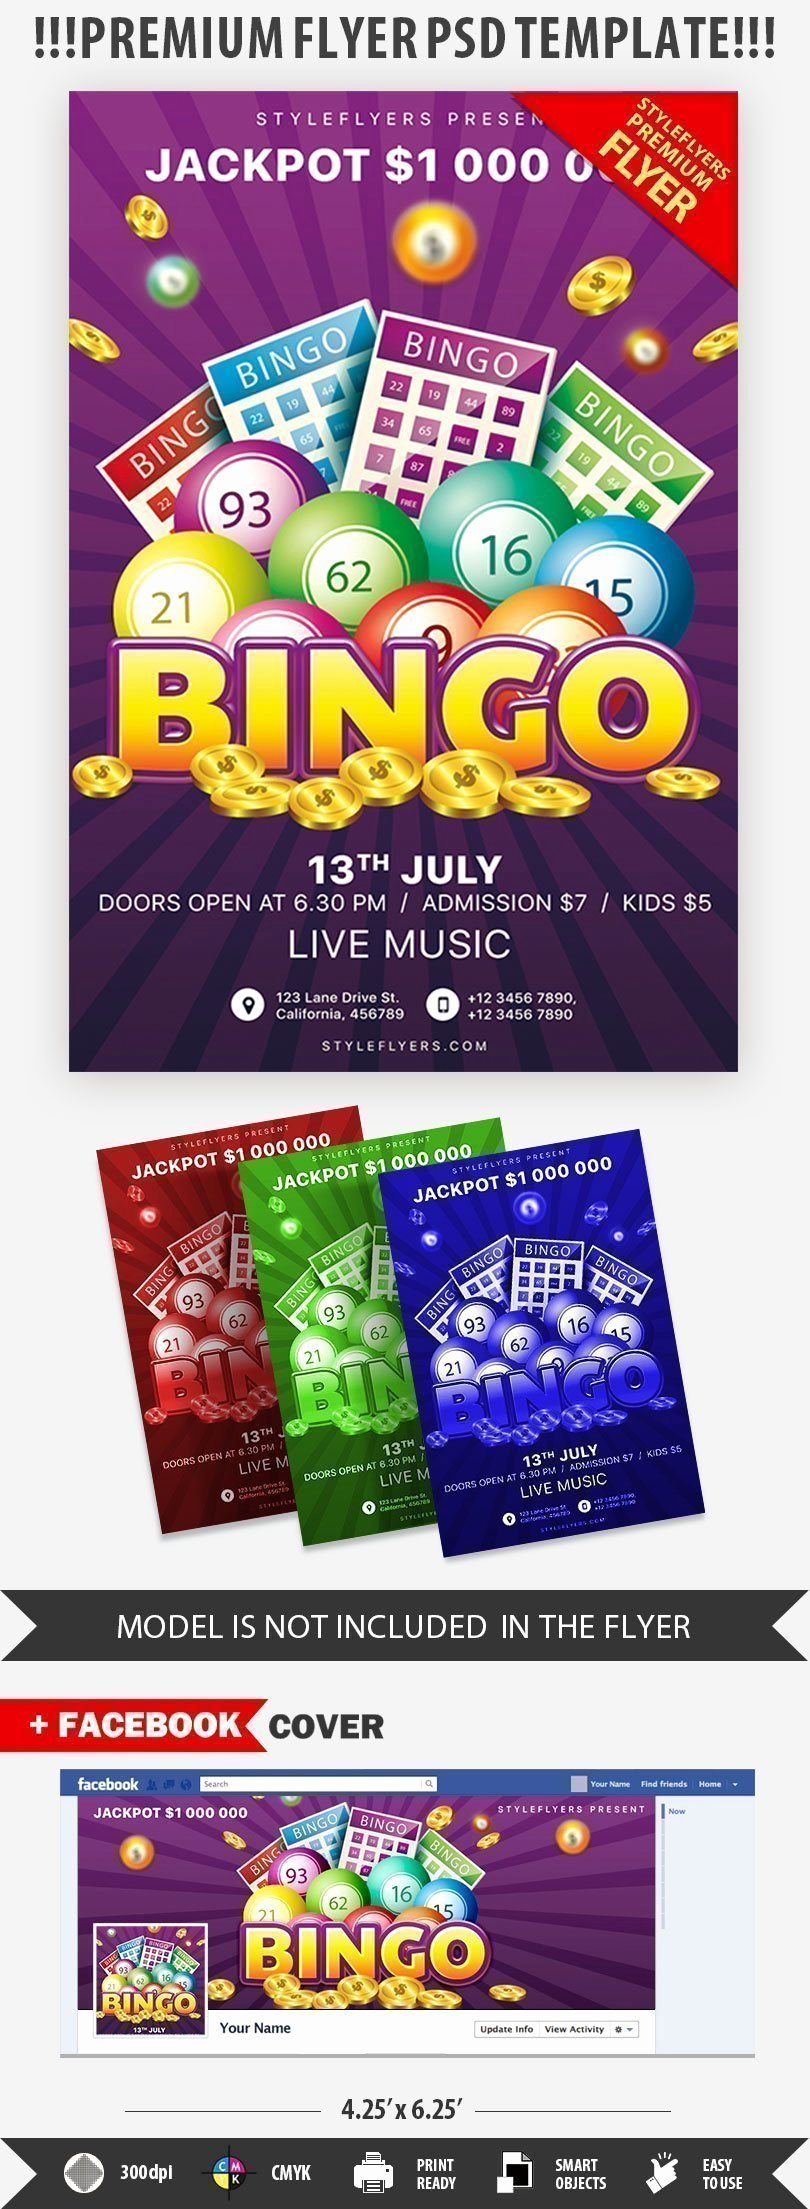 Bingo Flyer Template Free Awesome Bingo Psd Flyer Template Styleflyers